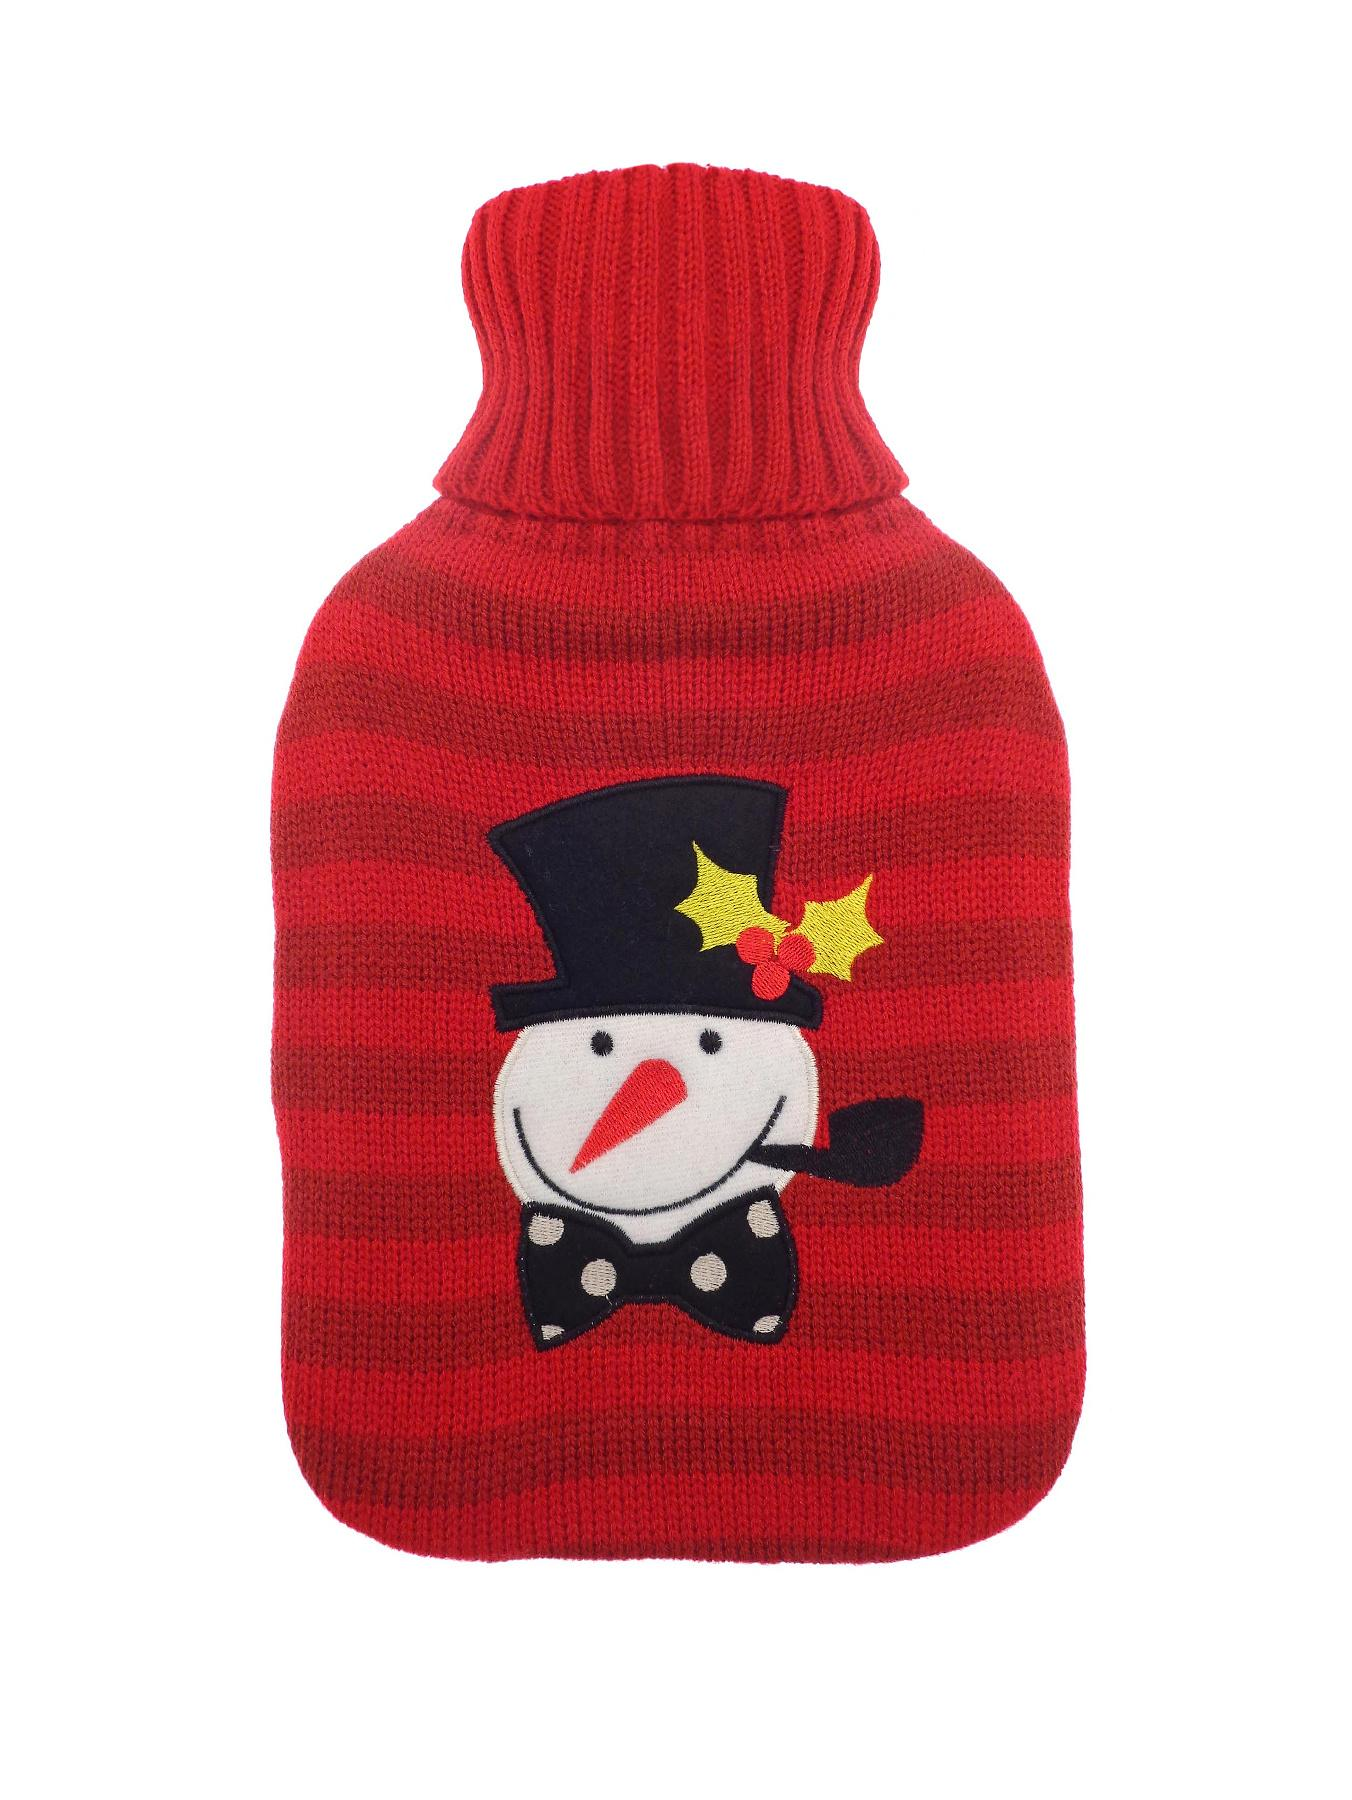 Mr Snowman Hot Water Bottle - Red